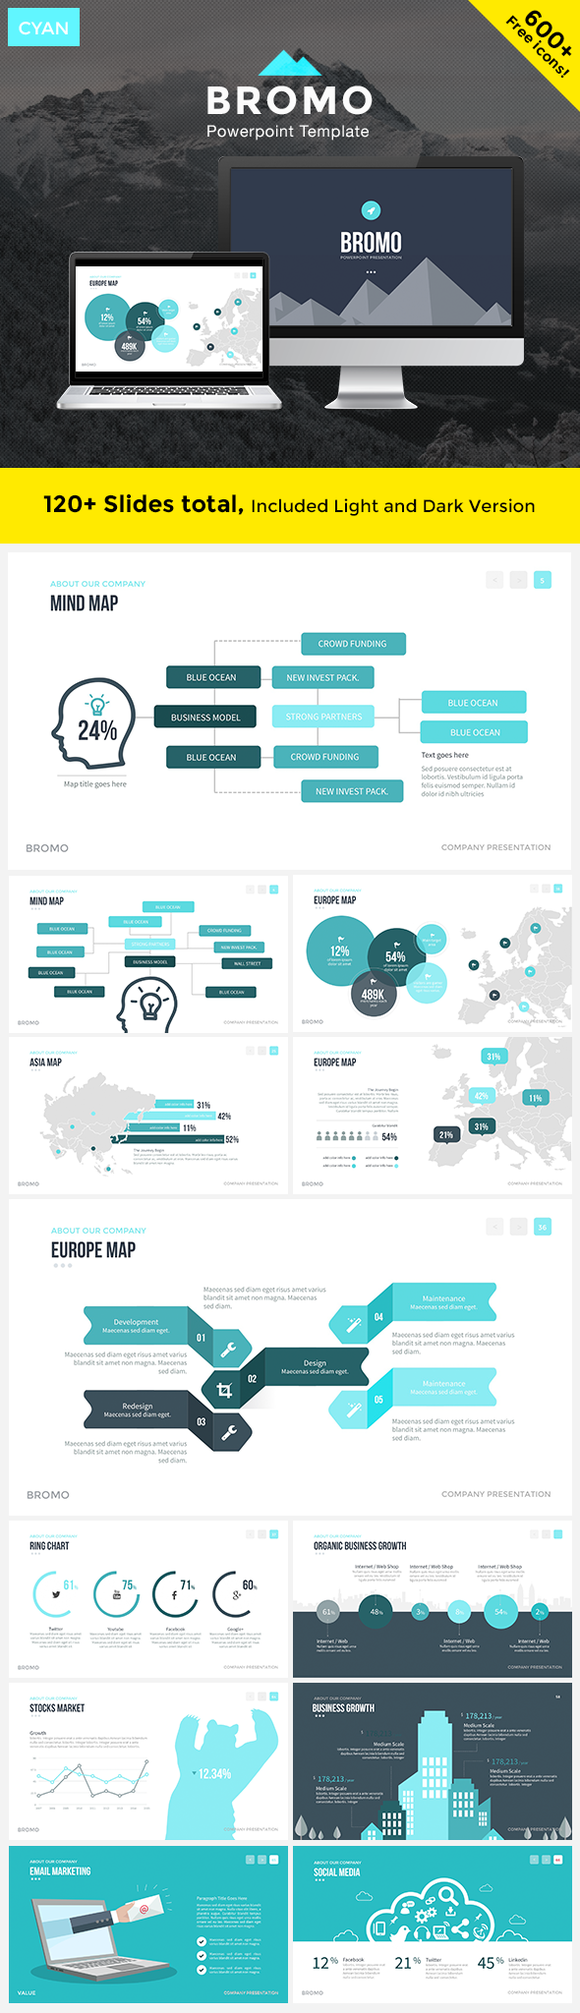 BROMO Powerpoint Template